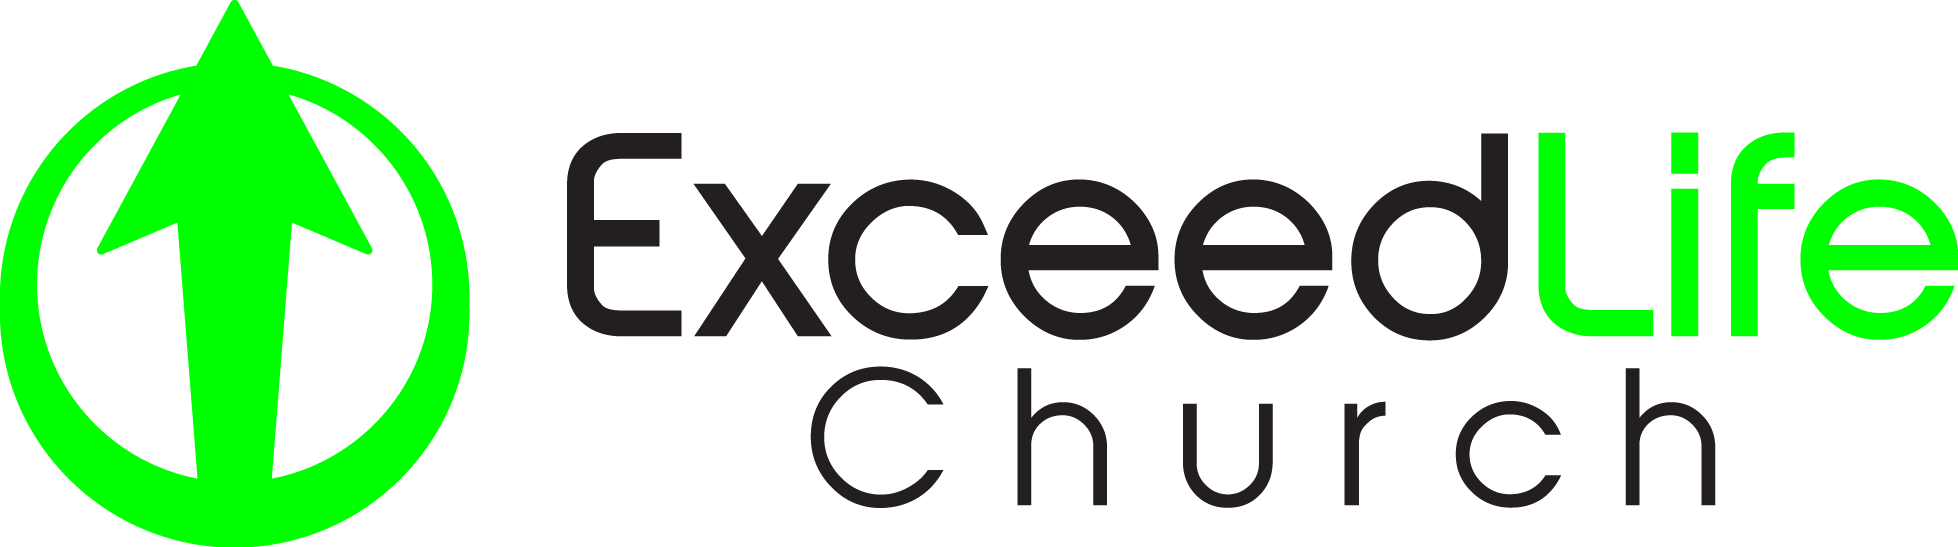 Exceed Life Church